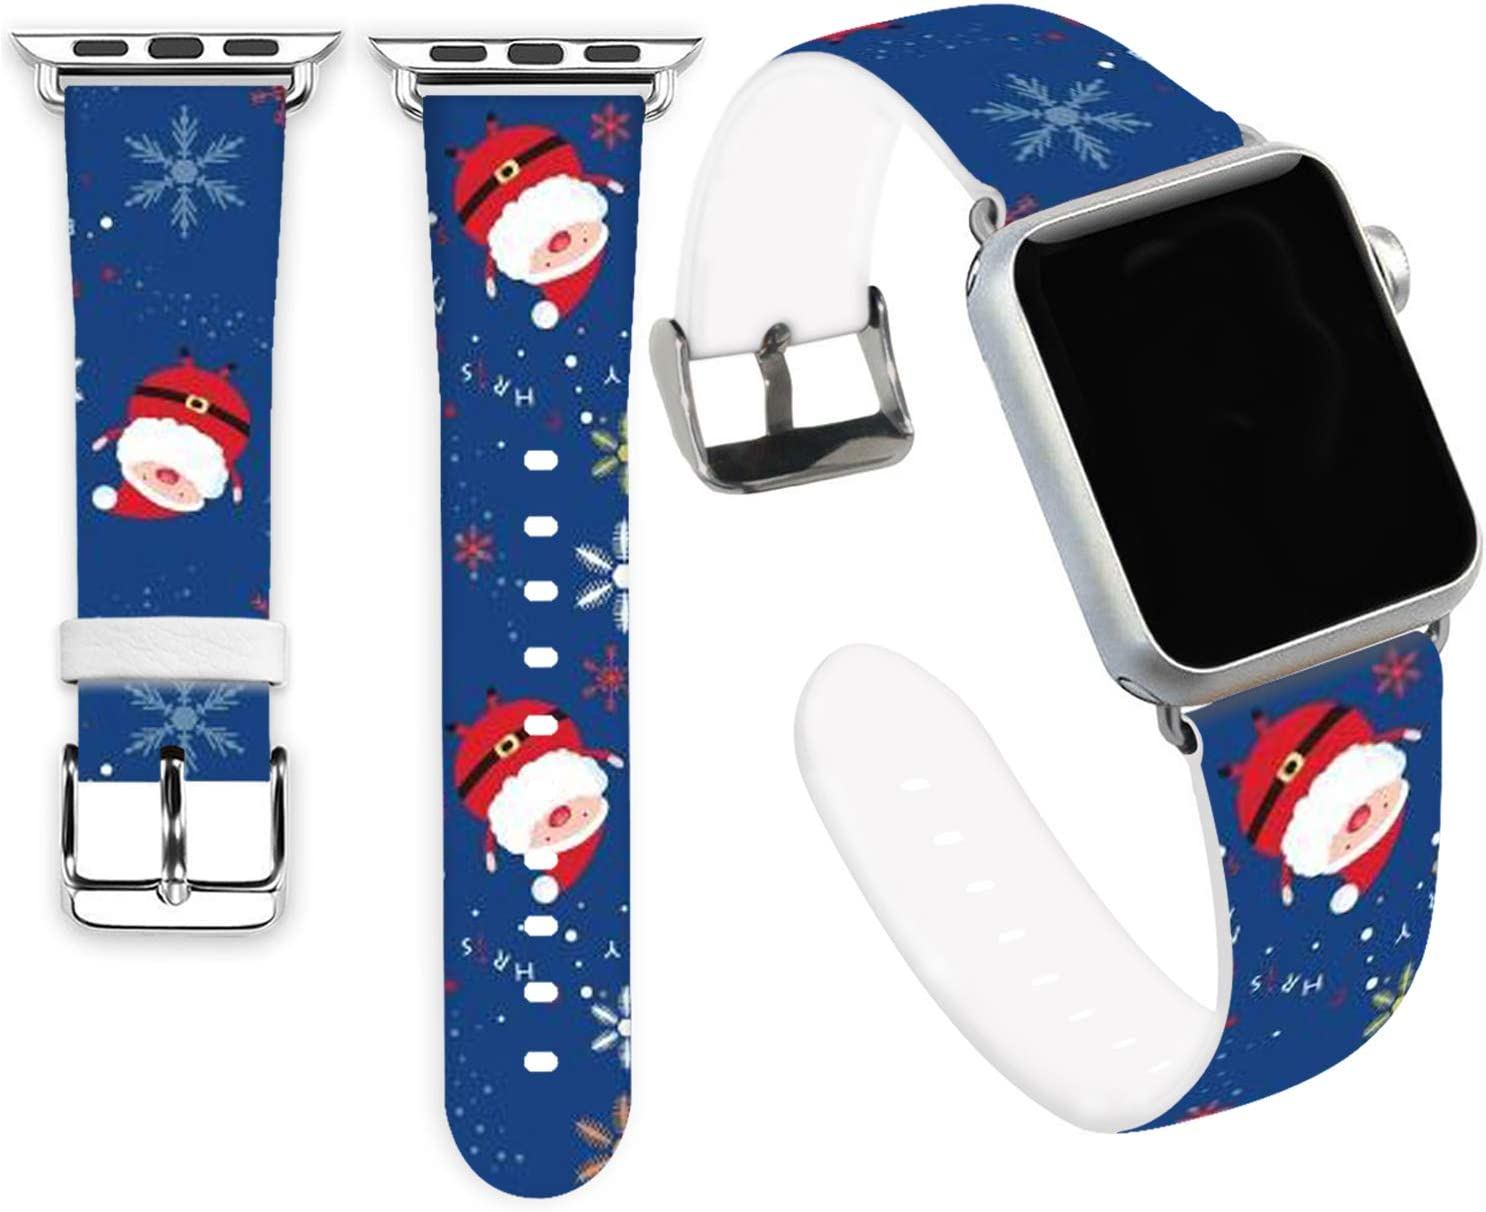 Claus Bands Compatible for iWatch 42mm 44mm,Jolook Soft Leather Sport Style Replacement Band Strap Compatible with Apple Watch 44mm 42mm Series 6/5/4/3/2/1 - Cute Santa Claus